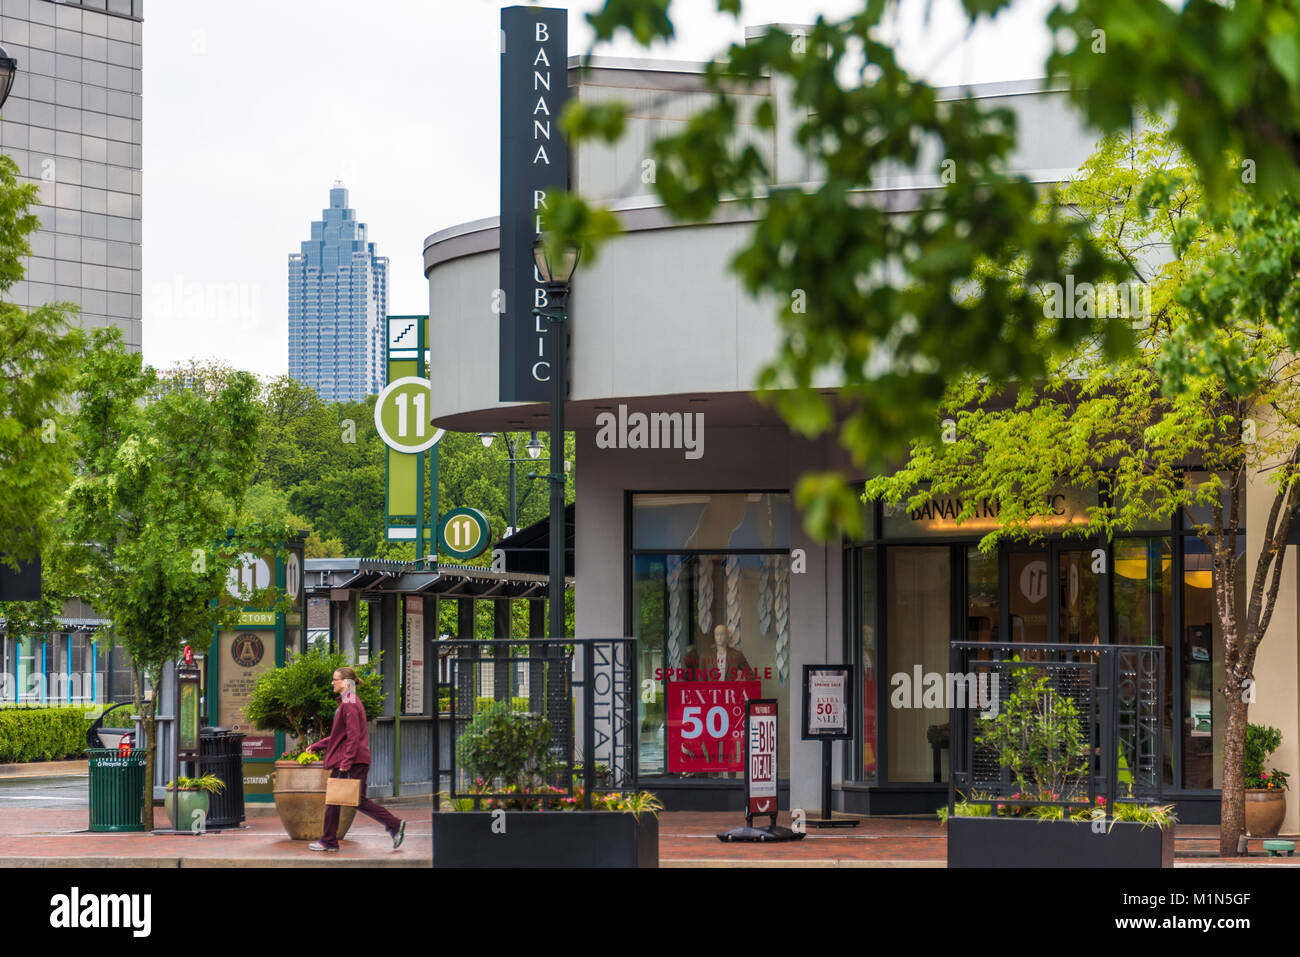 Atlanta Station Restaurants Upscale Neighborhood Stock Photos And Upscale Neighborhood